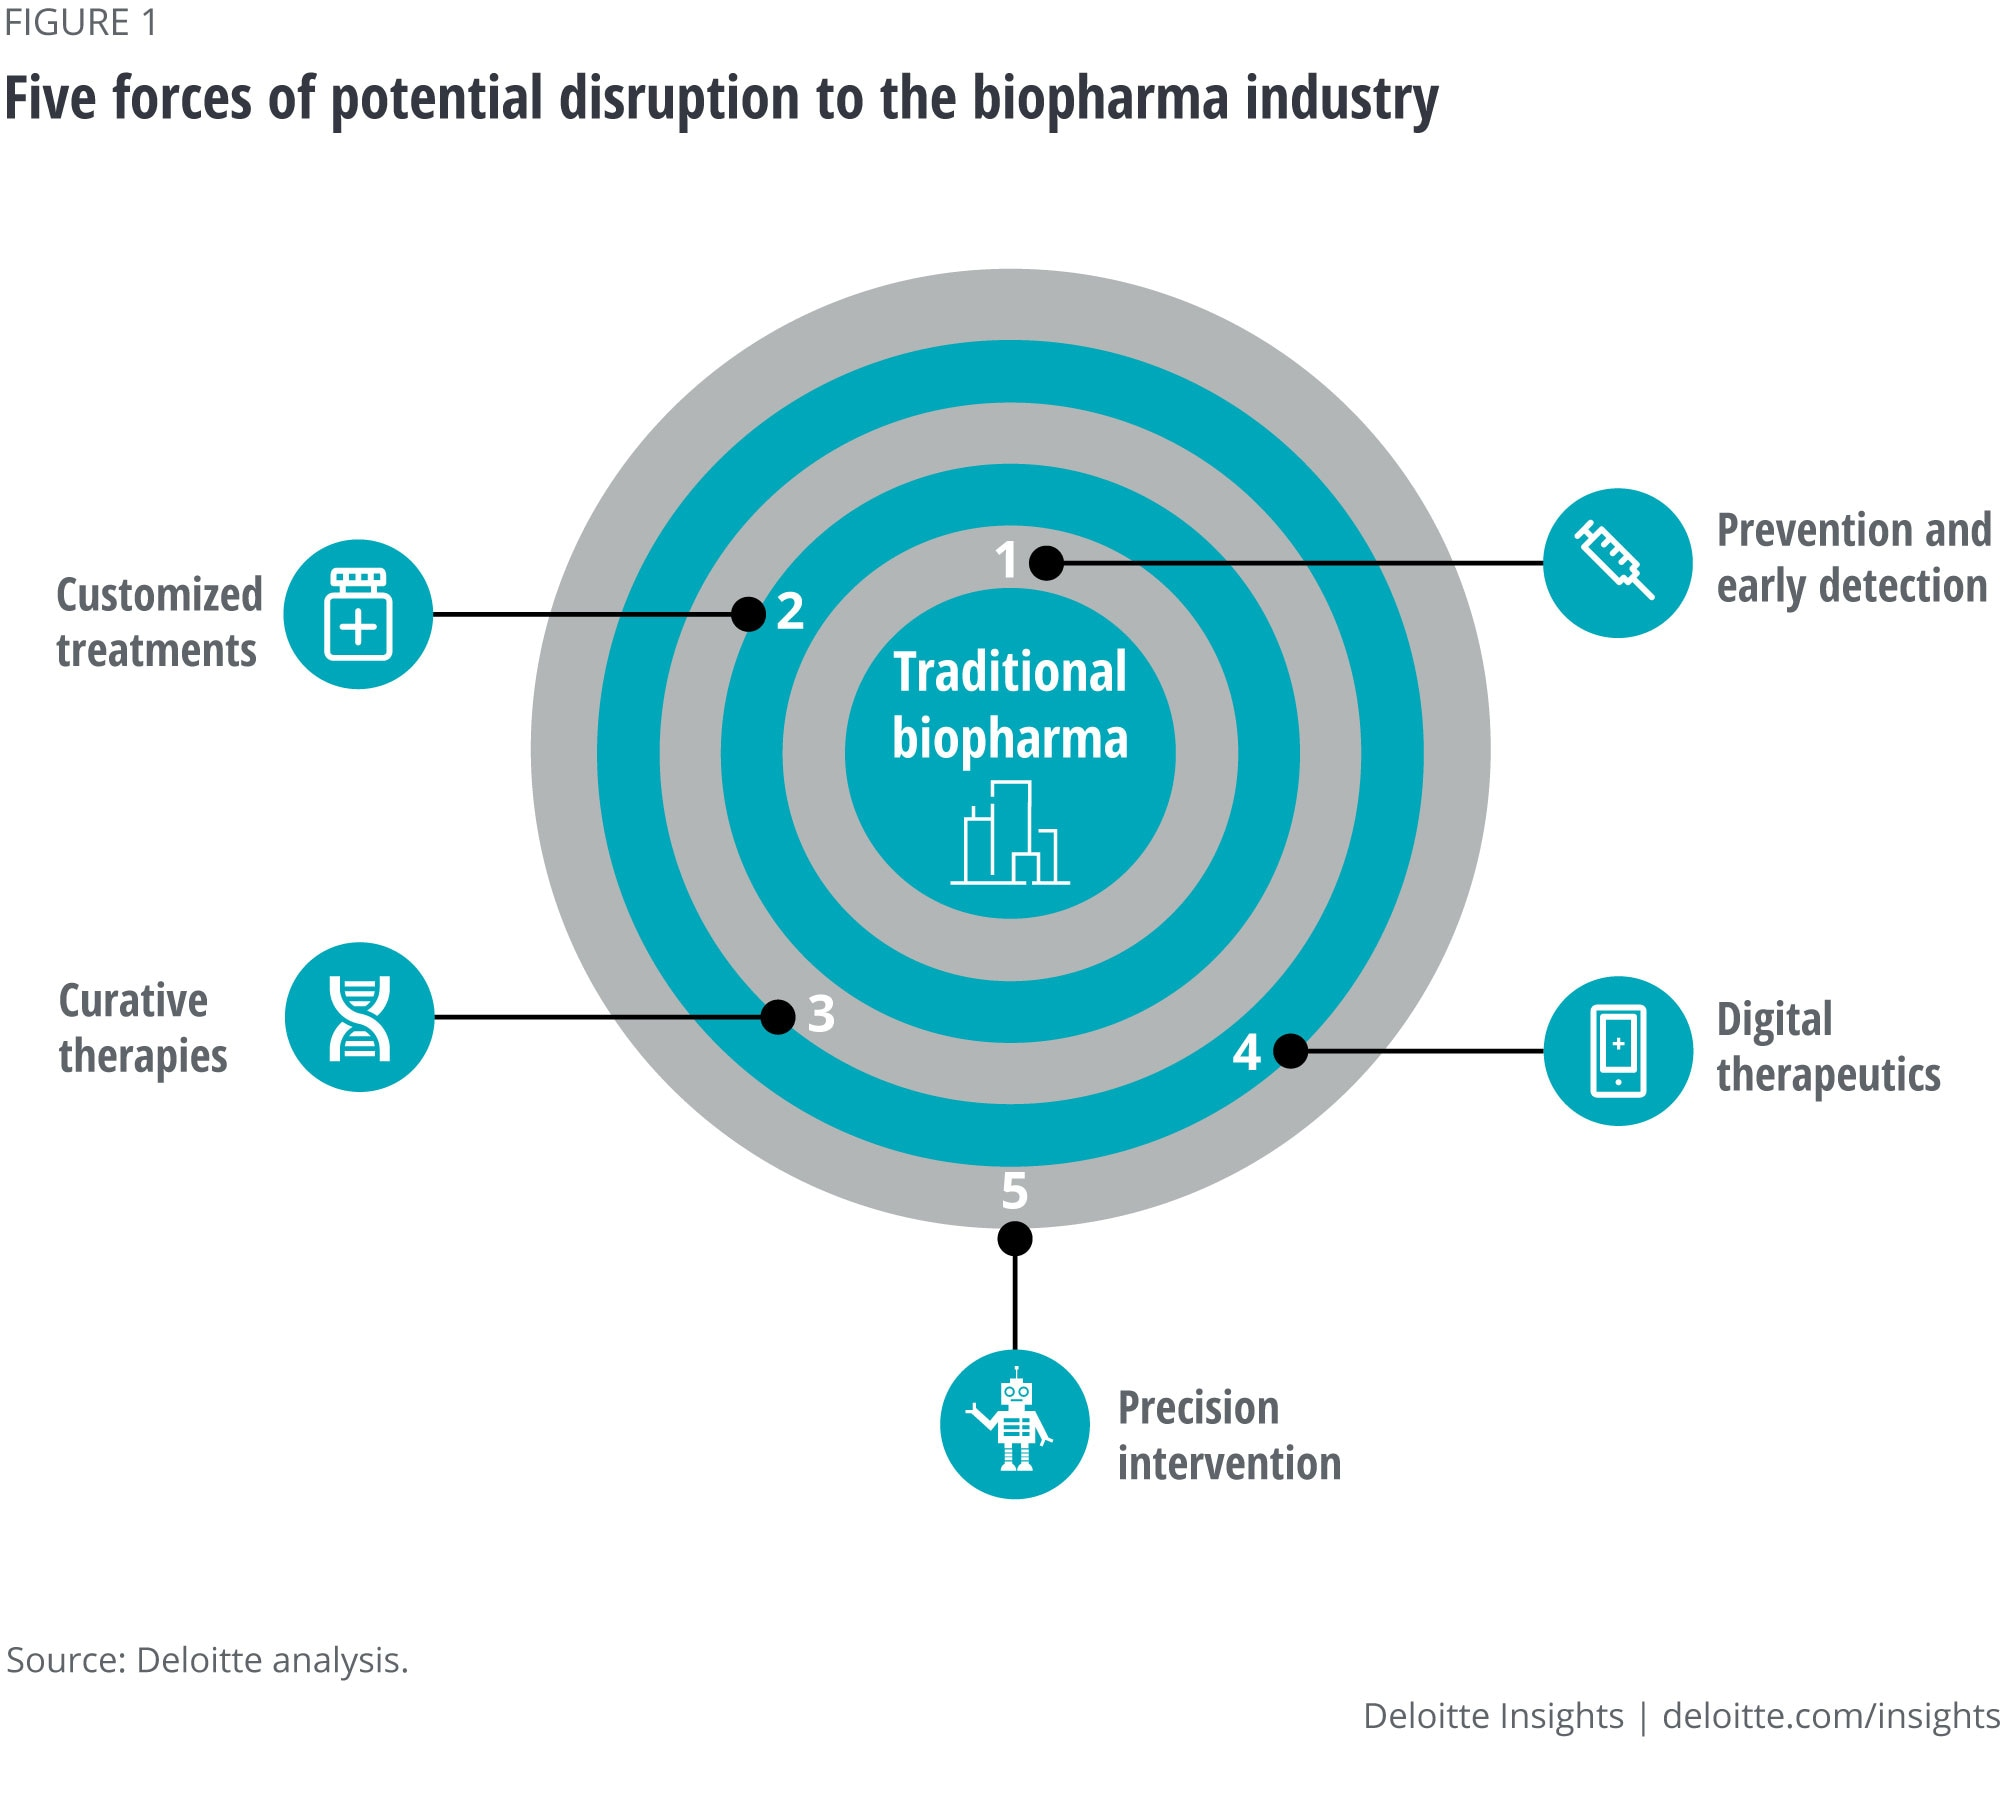 Five forces of potential disruption to the biopharma industry